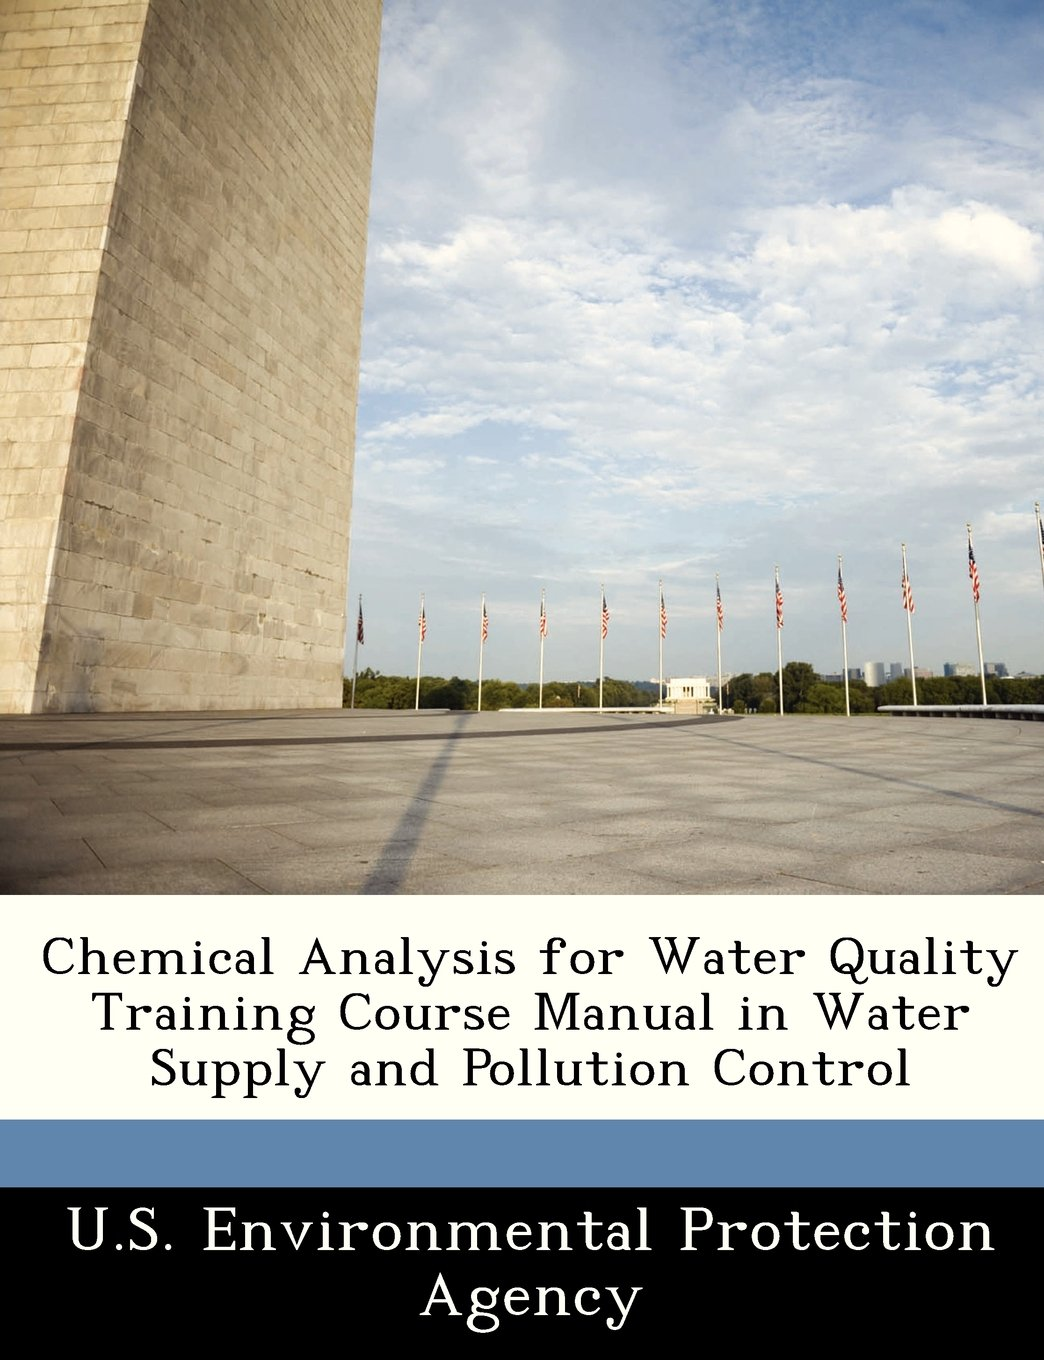 Download Chemical Analysis for Water Quality Training Course Manual in Water Supply and Pollution Control pdf